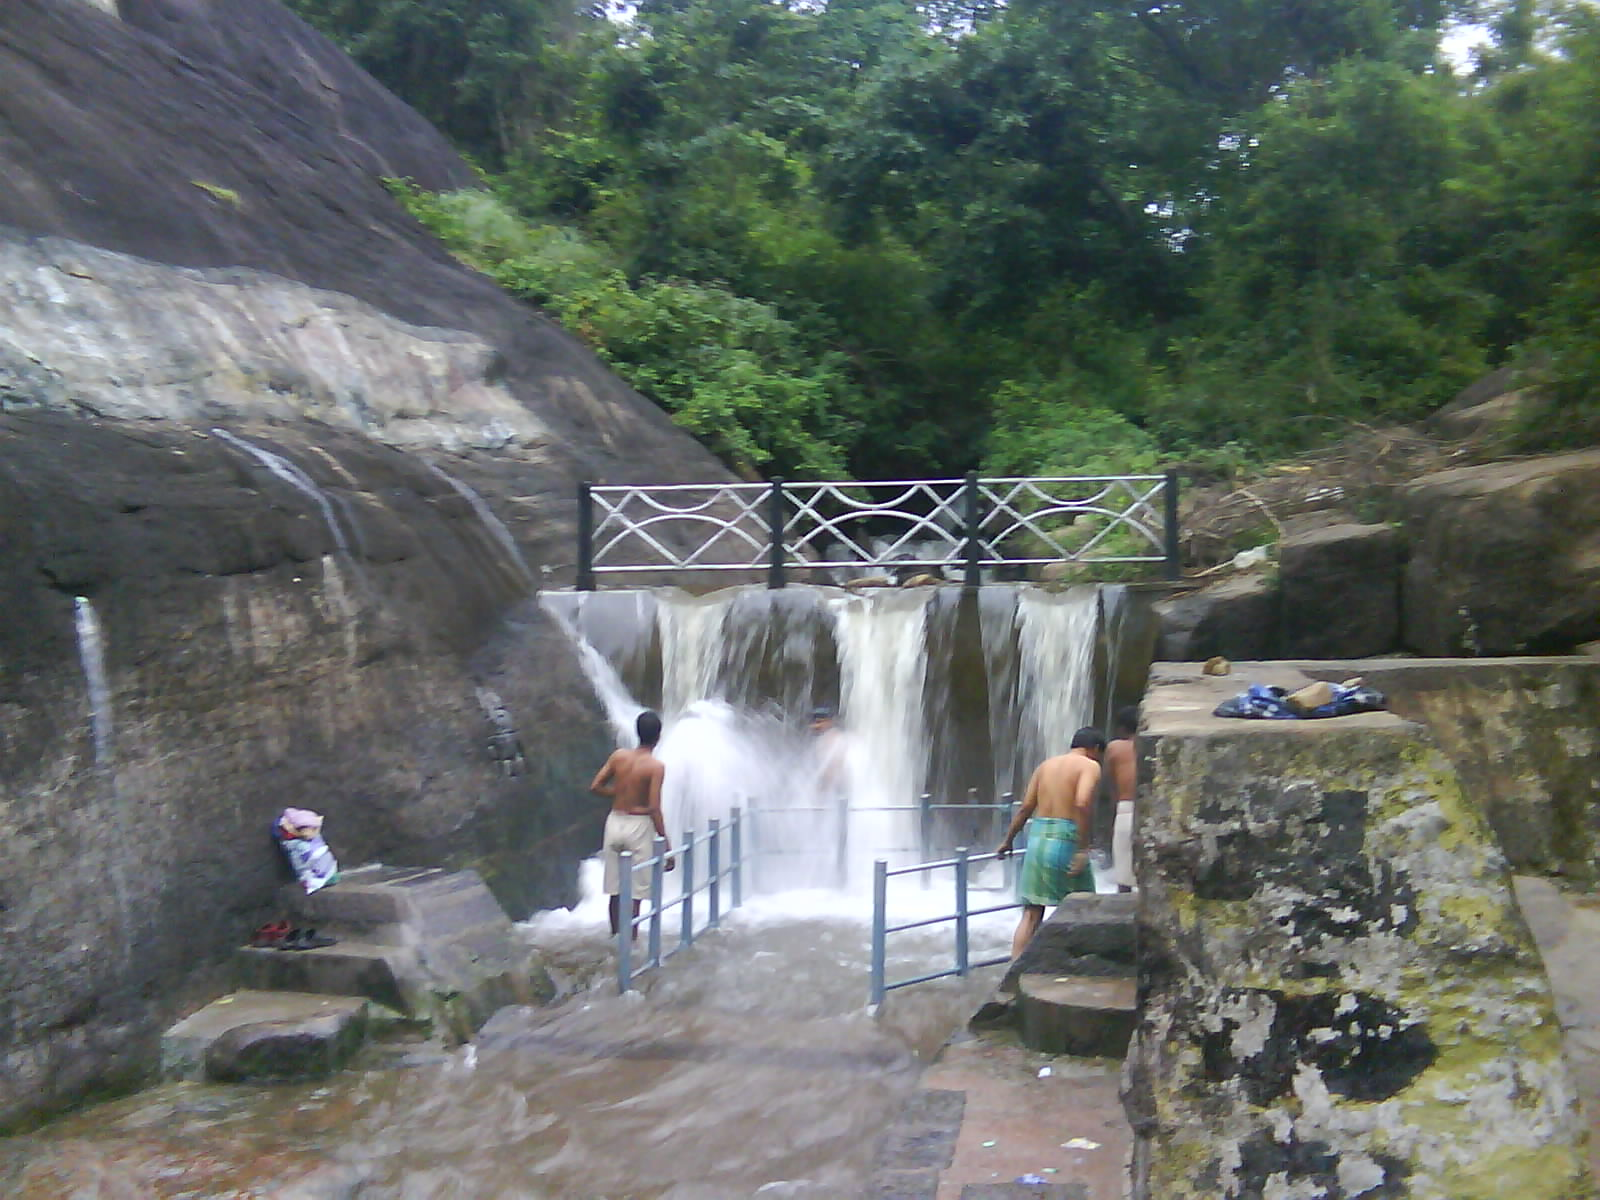 Courtallam India  city photos gallery : Courtallam Tiger falls Wikimedia Commons